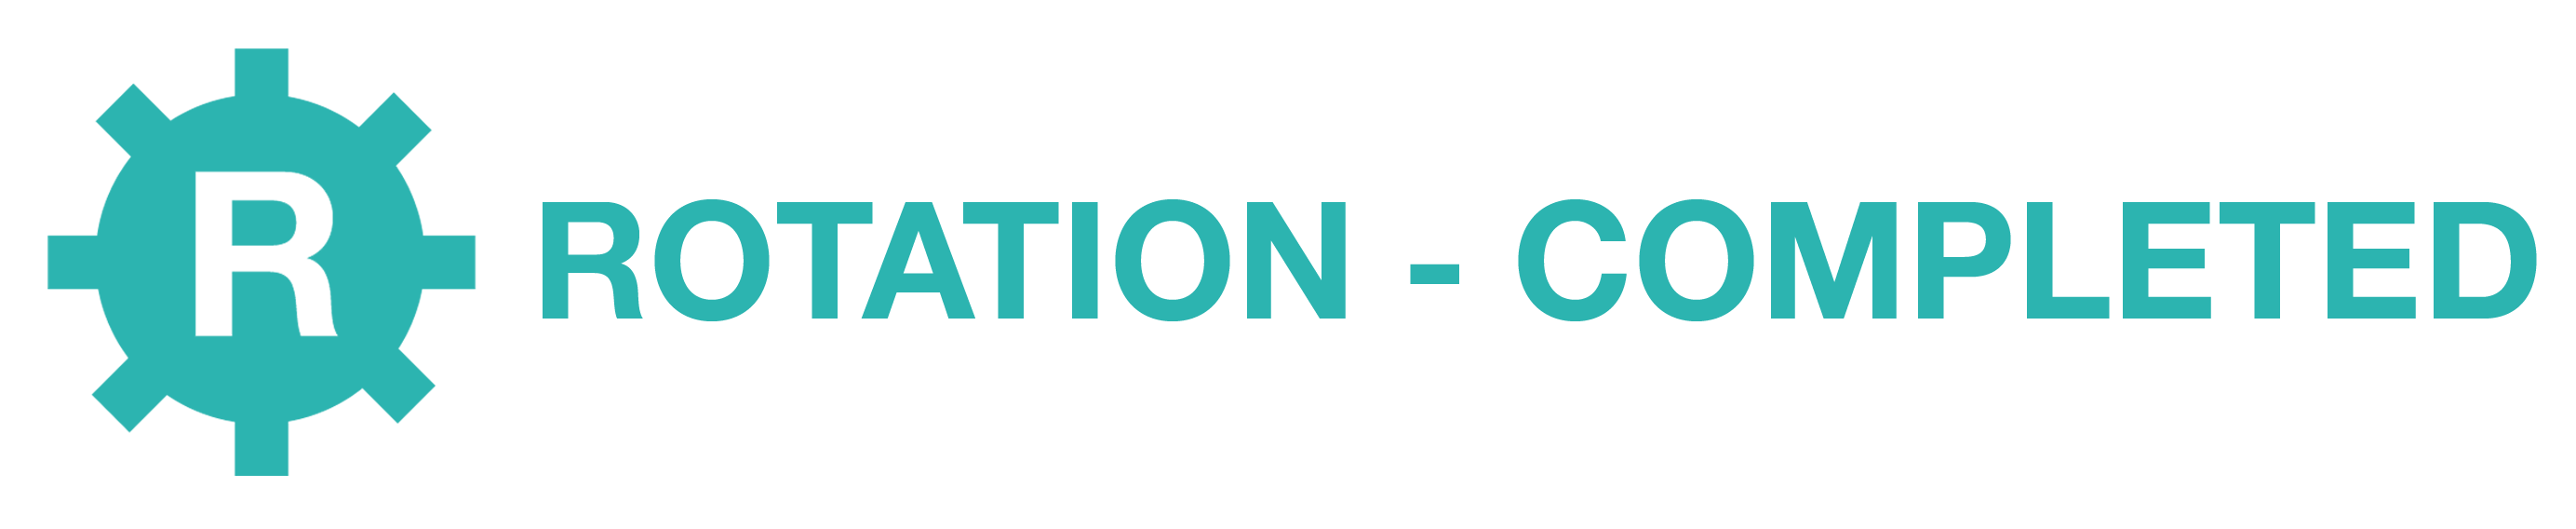 rotation completed - aqua.png